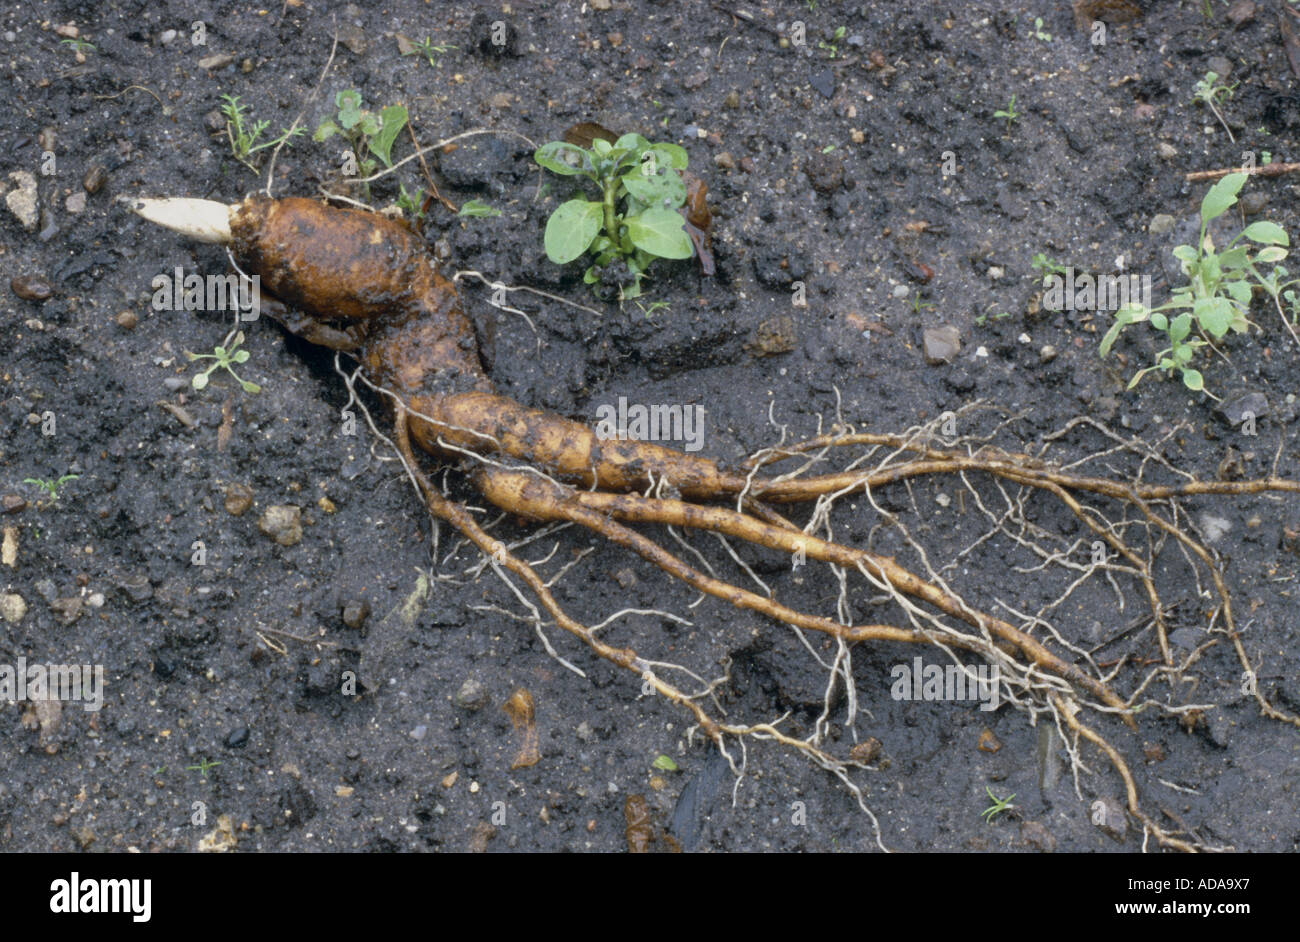 Mandrake Stock Photos Mandrake Stock Images Alamy